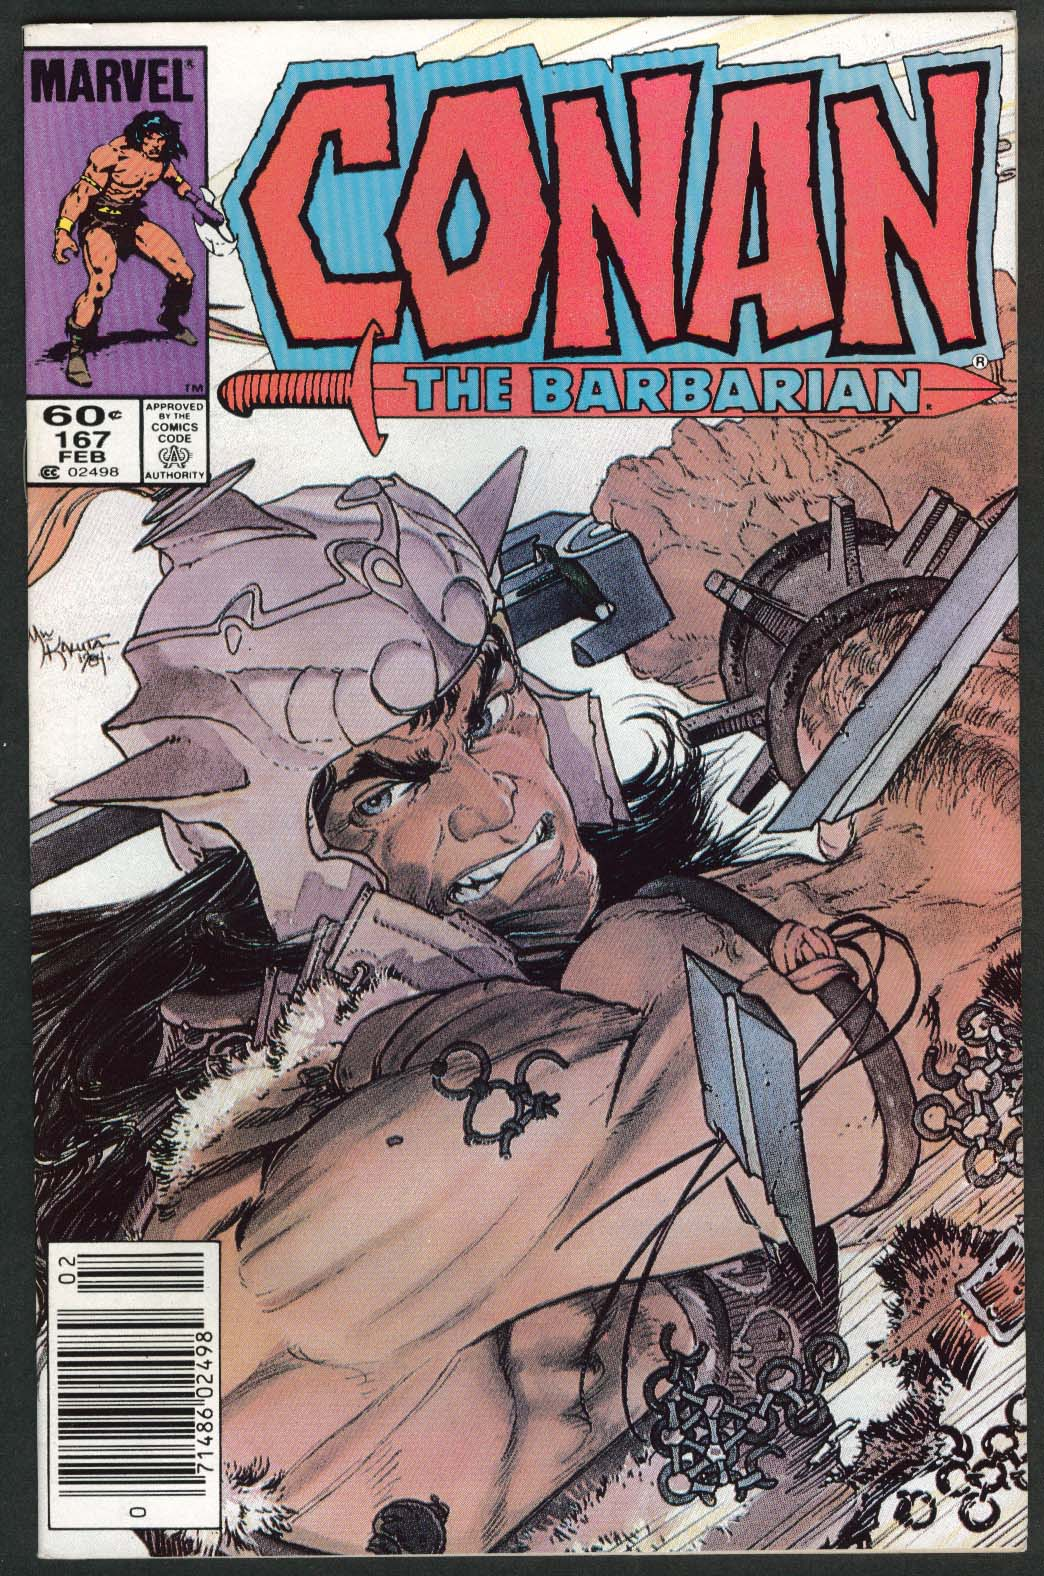 Image for CONAN the BARBARIAN #167 Marvel comic book 2 1985